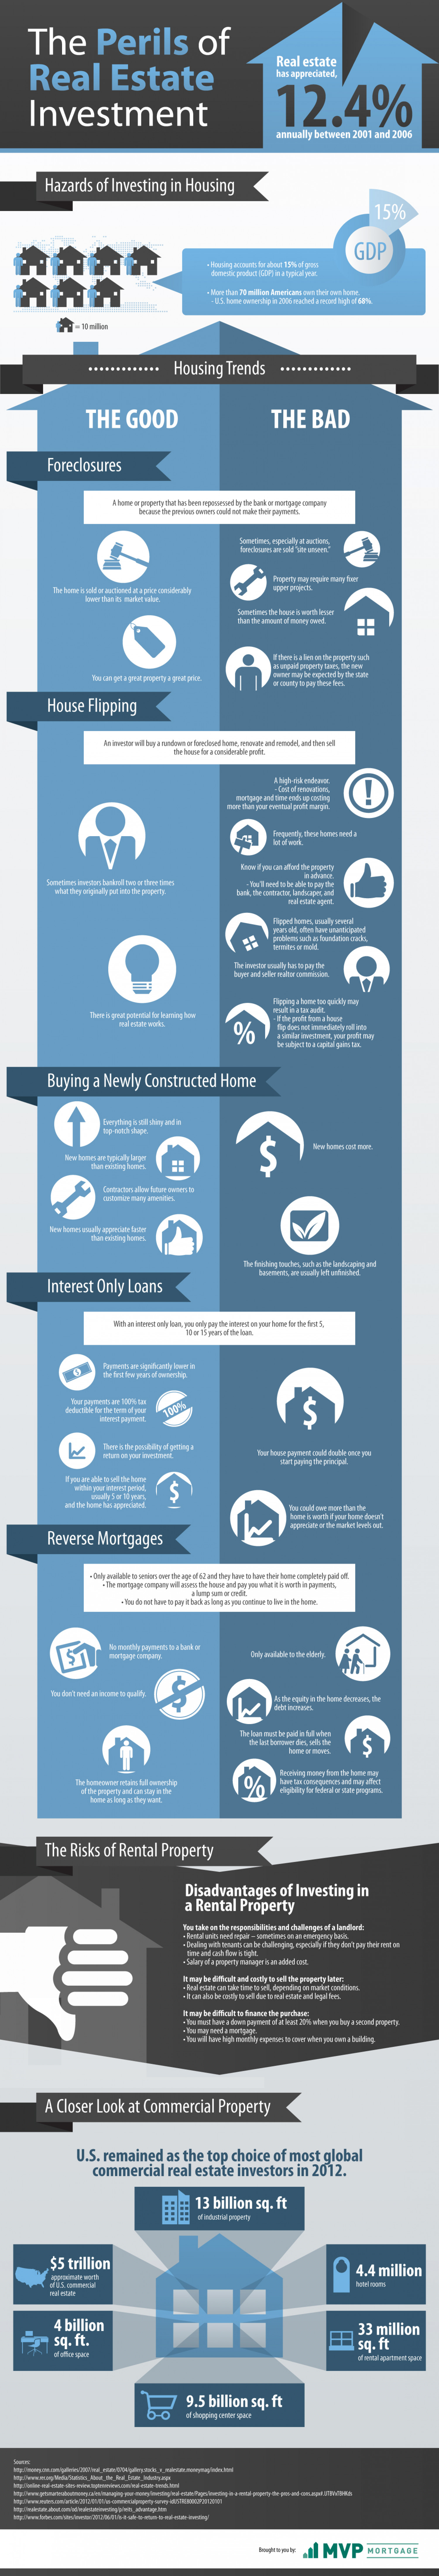 The Perils of Real Estate Investing Infographic